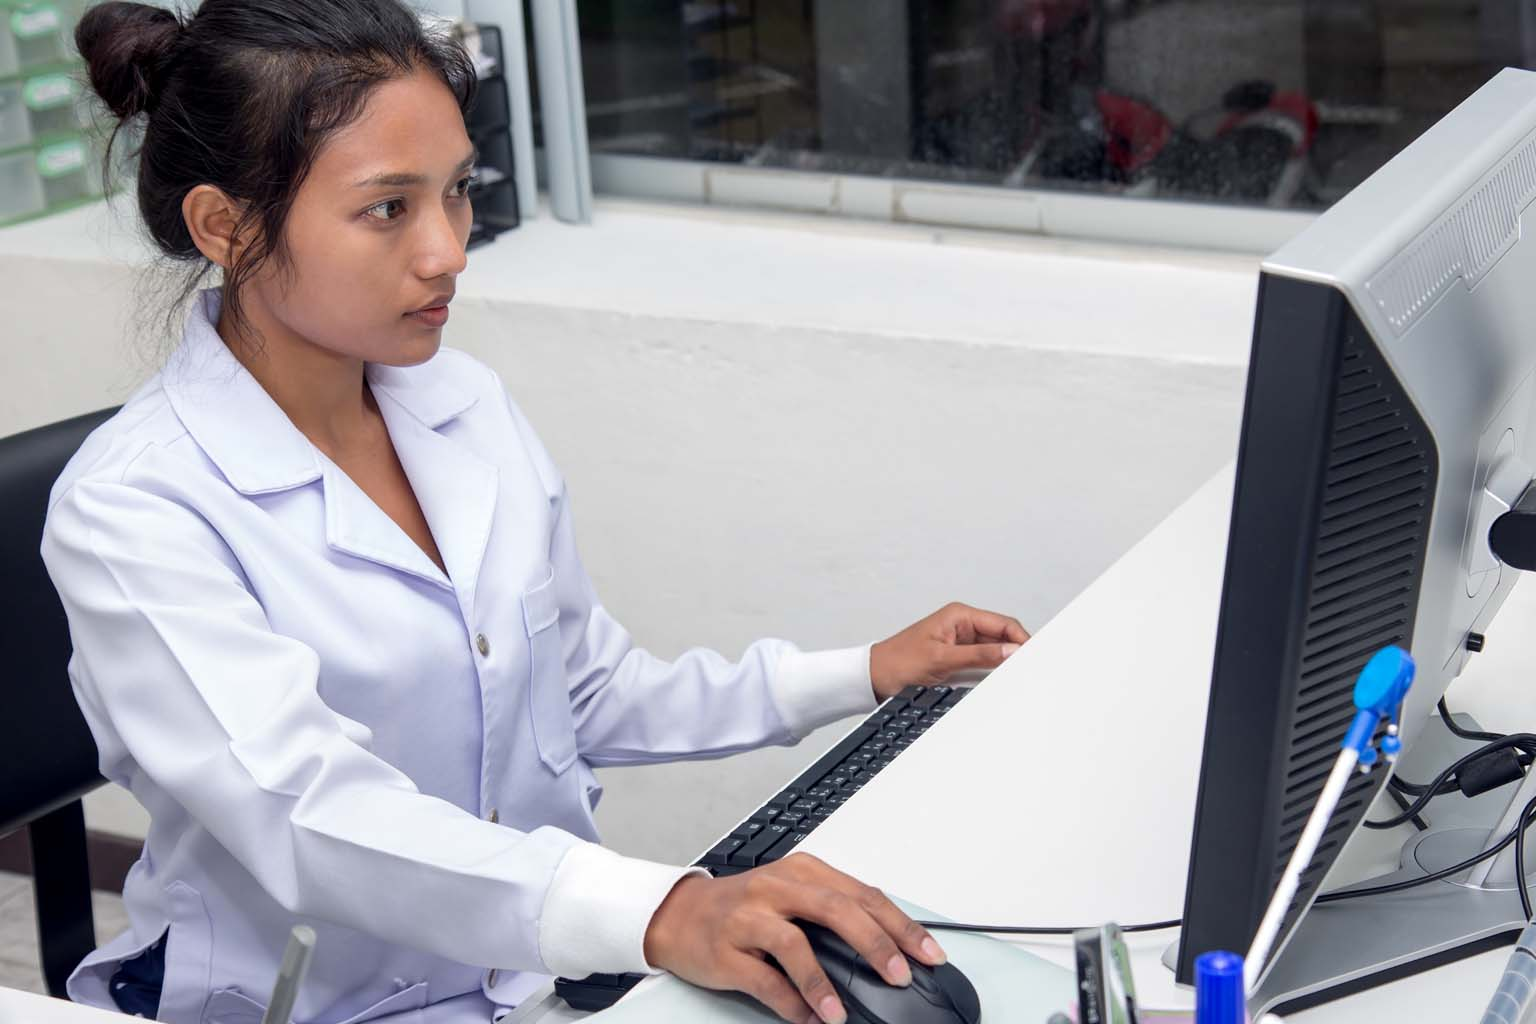 pharmacist using computer in pharmacy